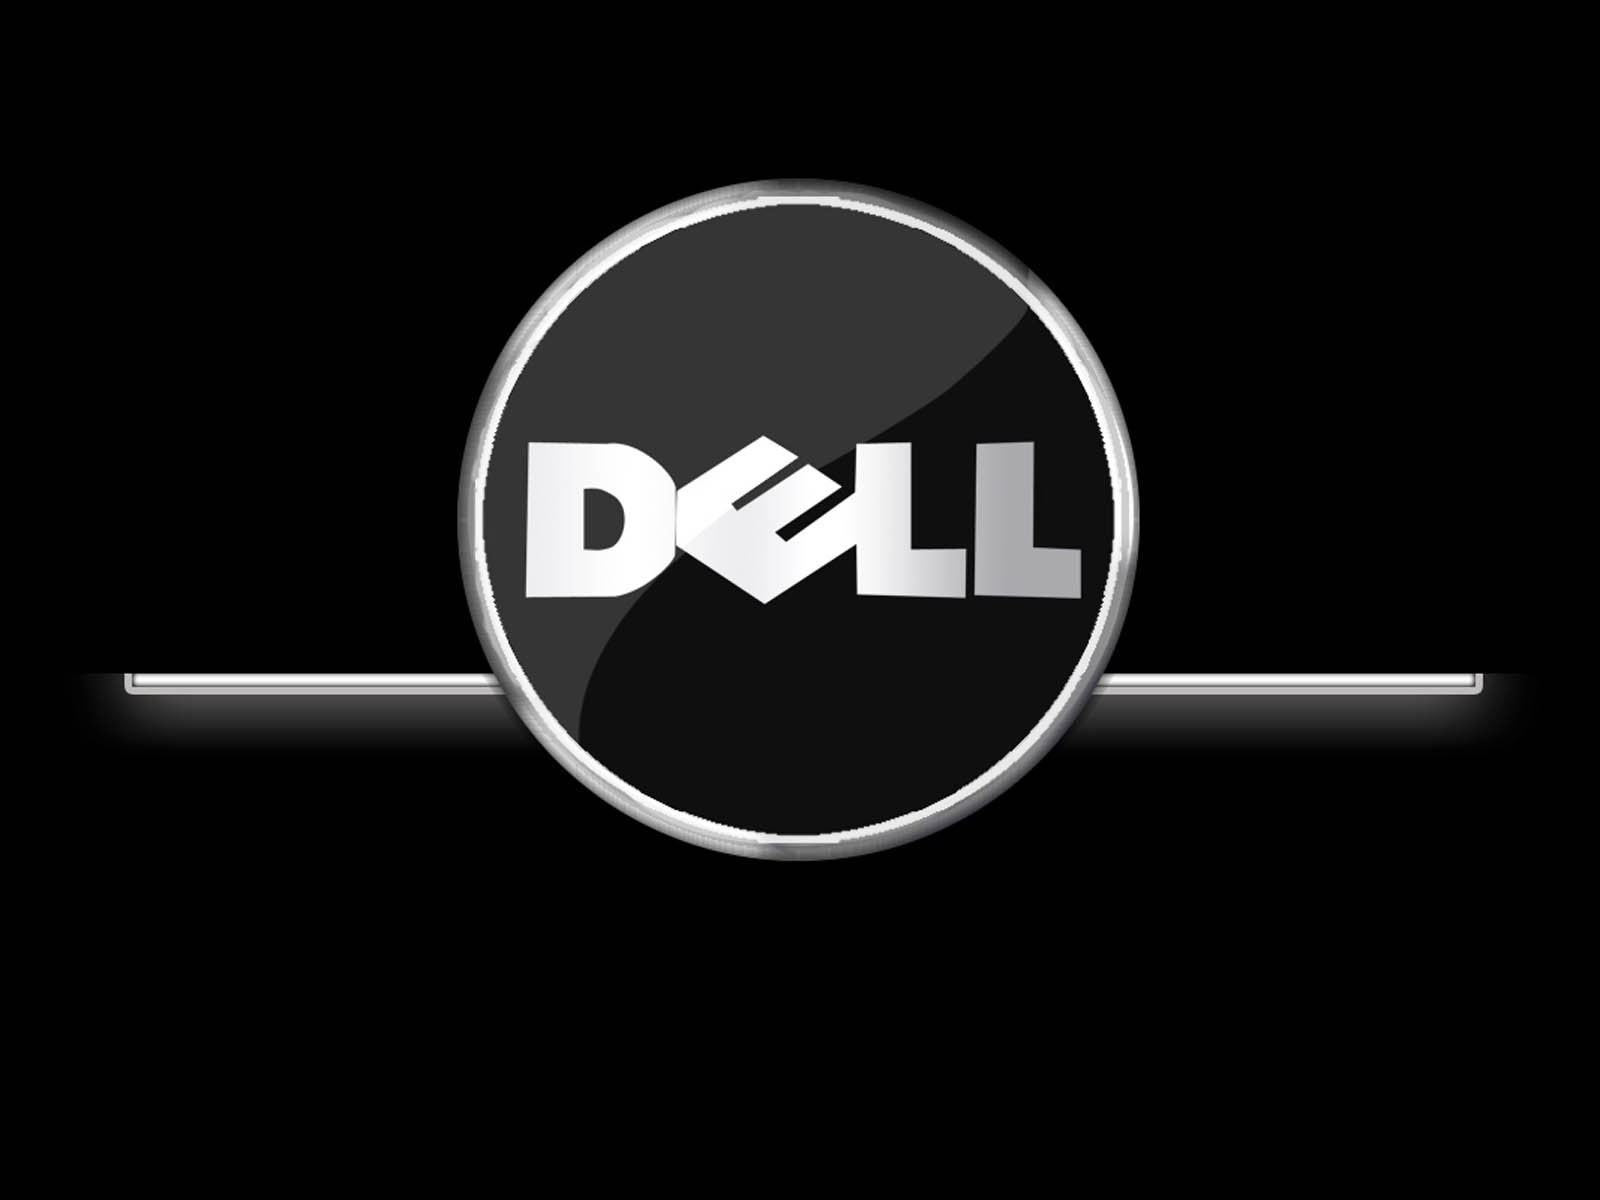 Dell hd wallpaper voltagebd Image collections